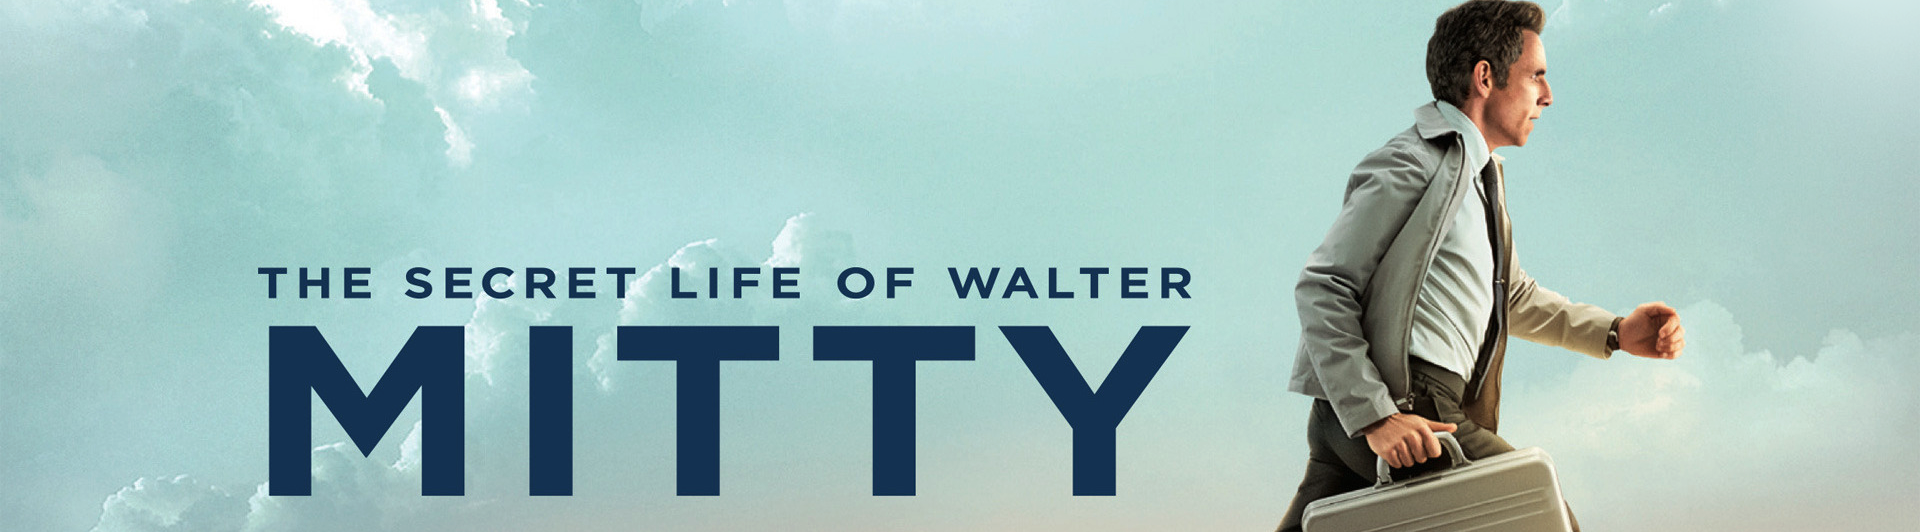 Recension The Secret Life of Walter Mitty GGG+ (inkl video)